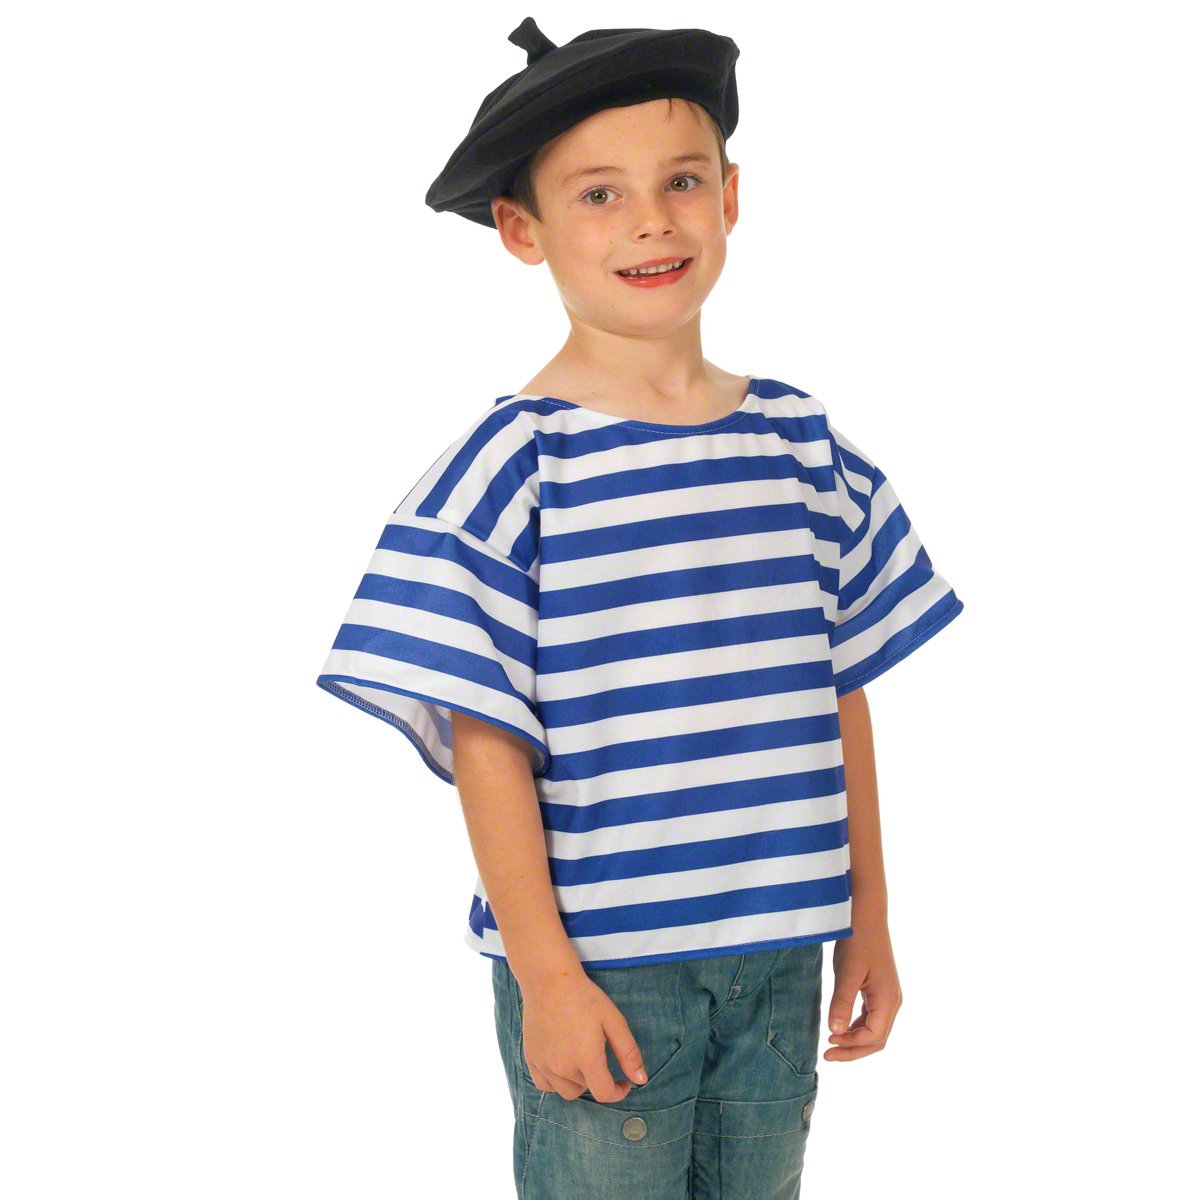 Charlie Crow French T-shirt and Beret Costume for kids one size fits ...